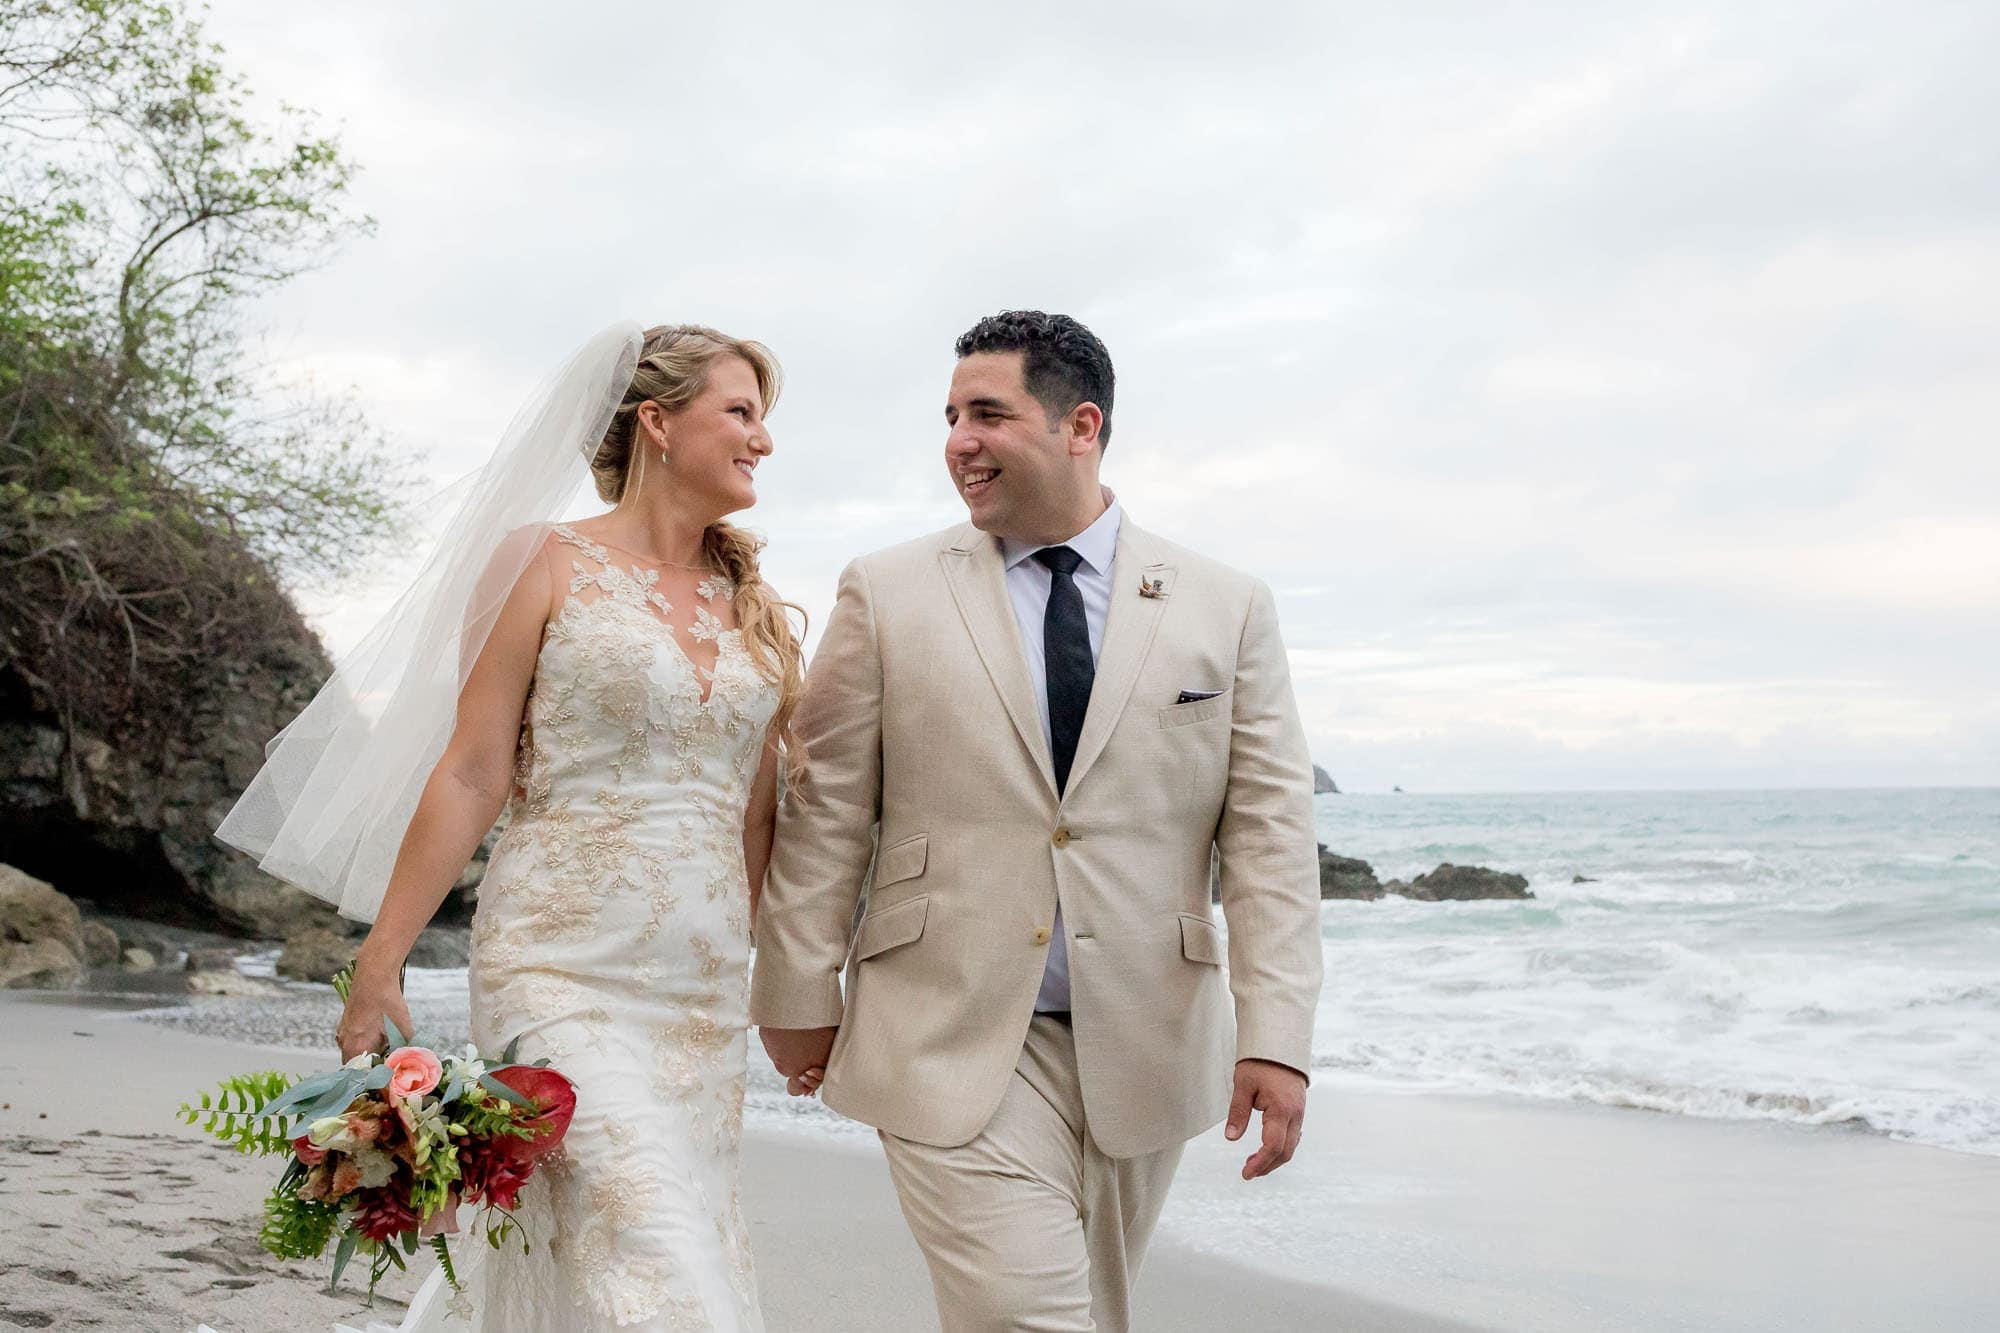 The bride and groom on the beach at Arenas del Mar